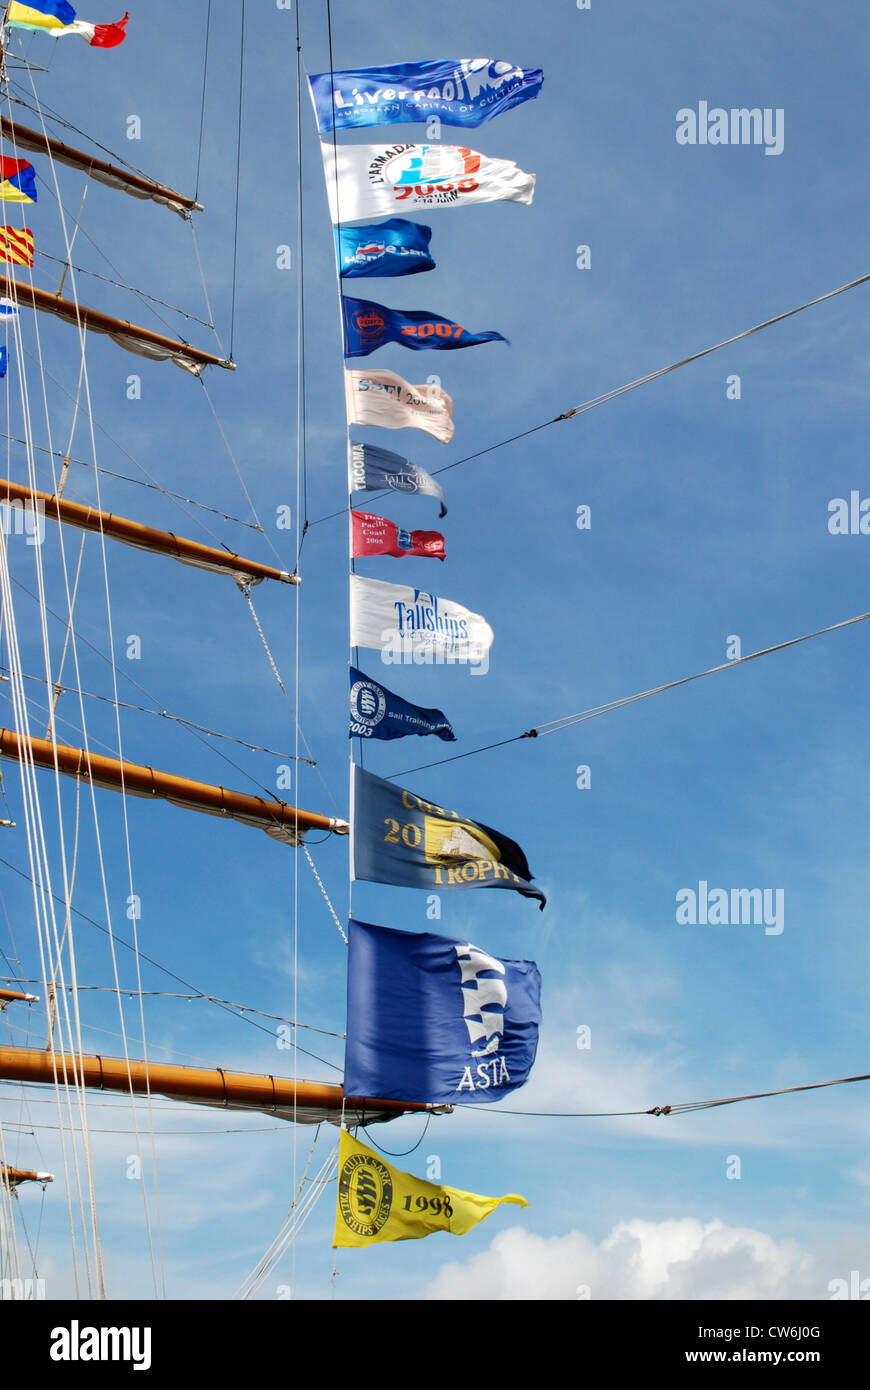 participation flags of tall ship blowing in the wind - Stock Image